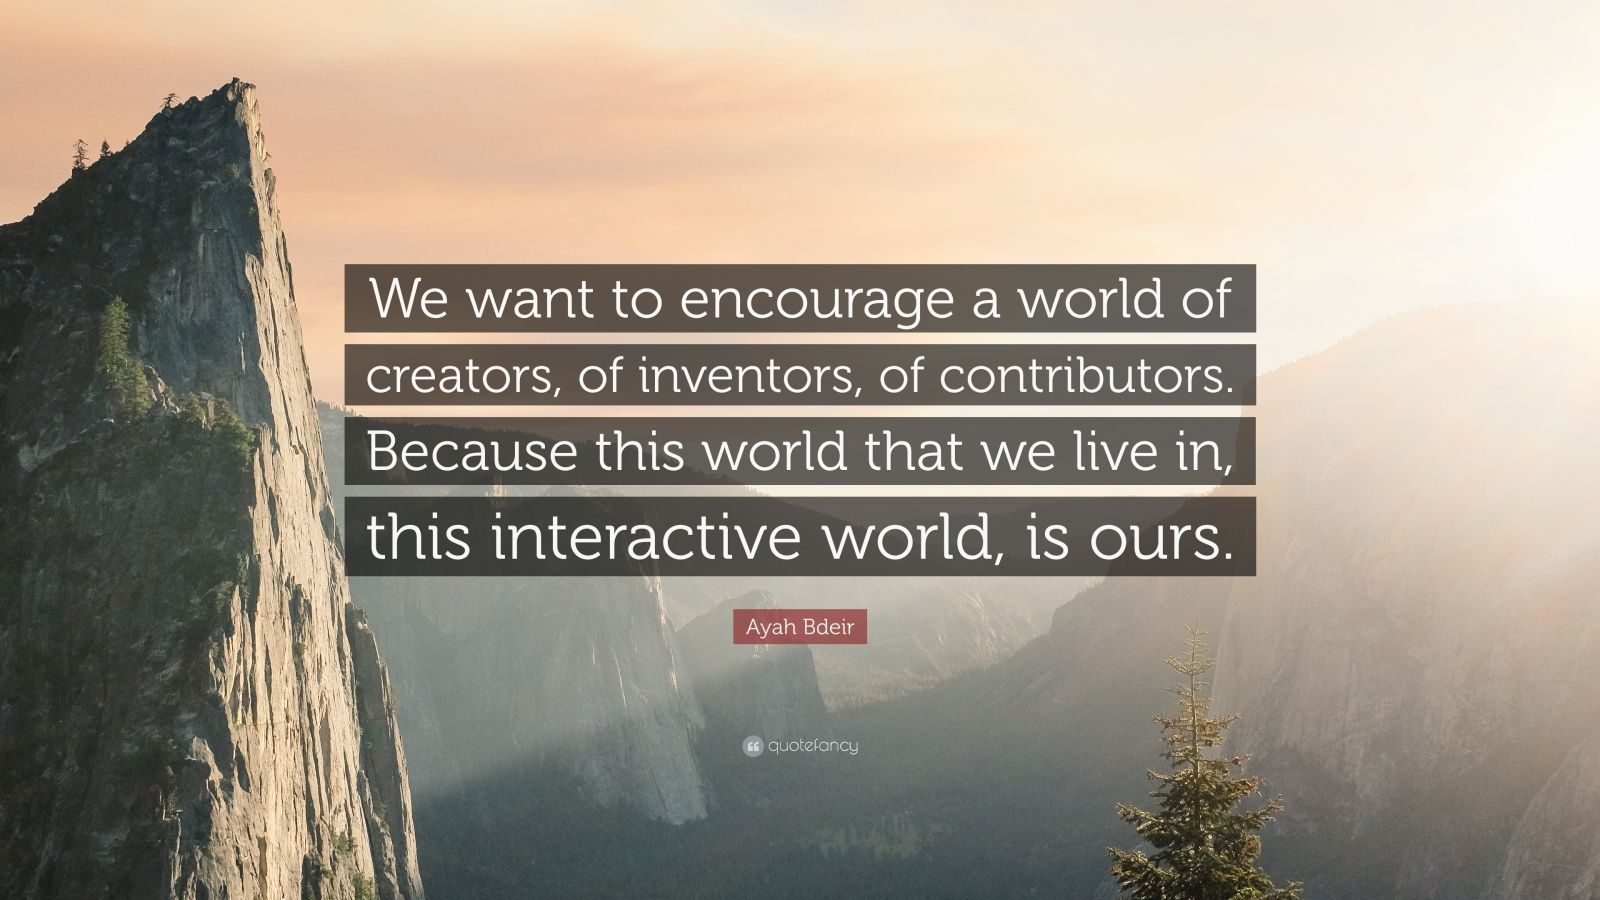 """Ayah Bdeir Quote: """"We want to encourage a world of creators, of inventors, of contributors. Because this world that we live in, this interactive world, is ours."""""""